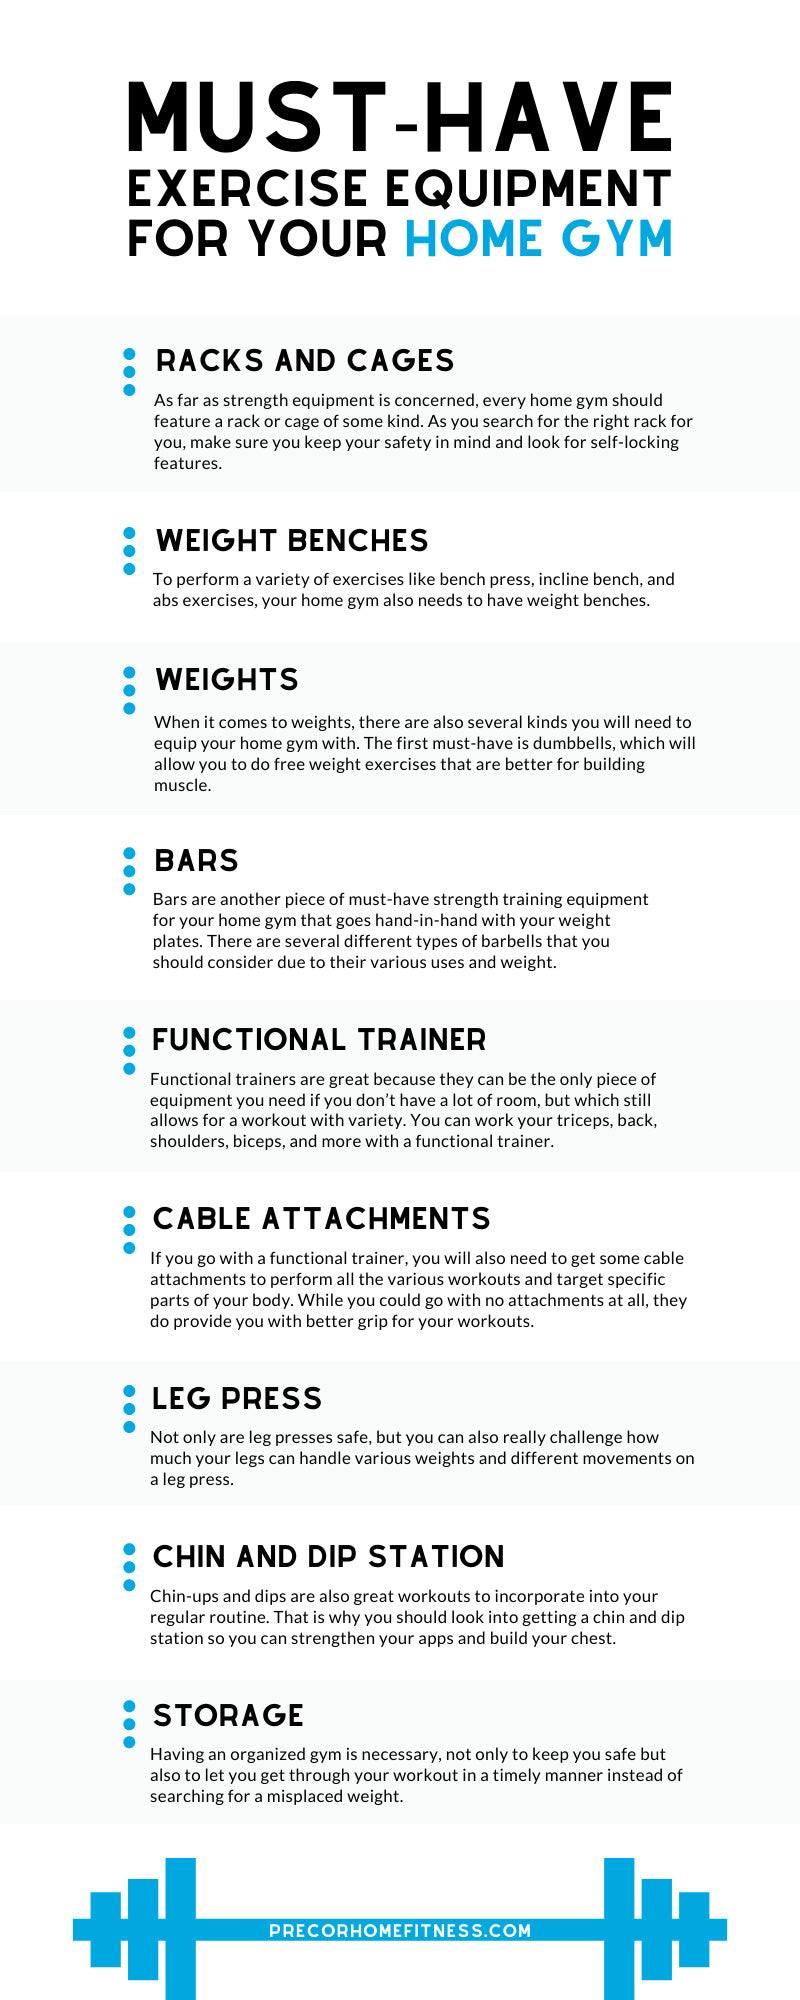 Here are the must-haves in exercise equipment for your home gym that will not only fit your space, but will also help you save and get the most out of its use.